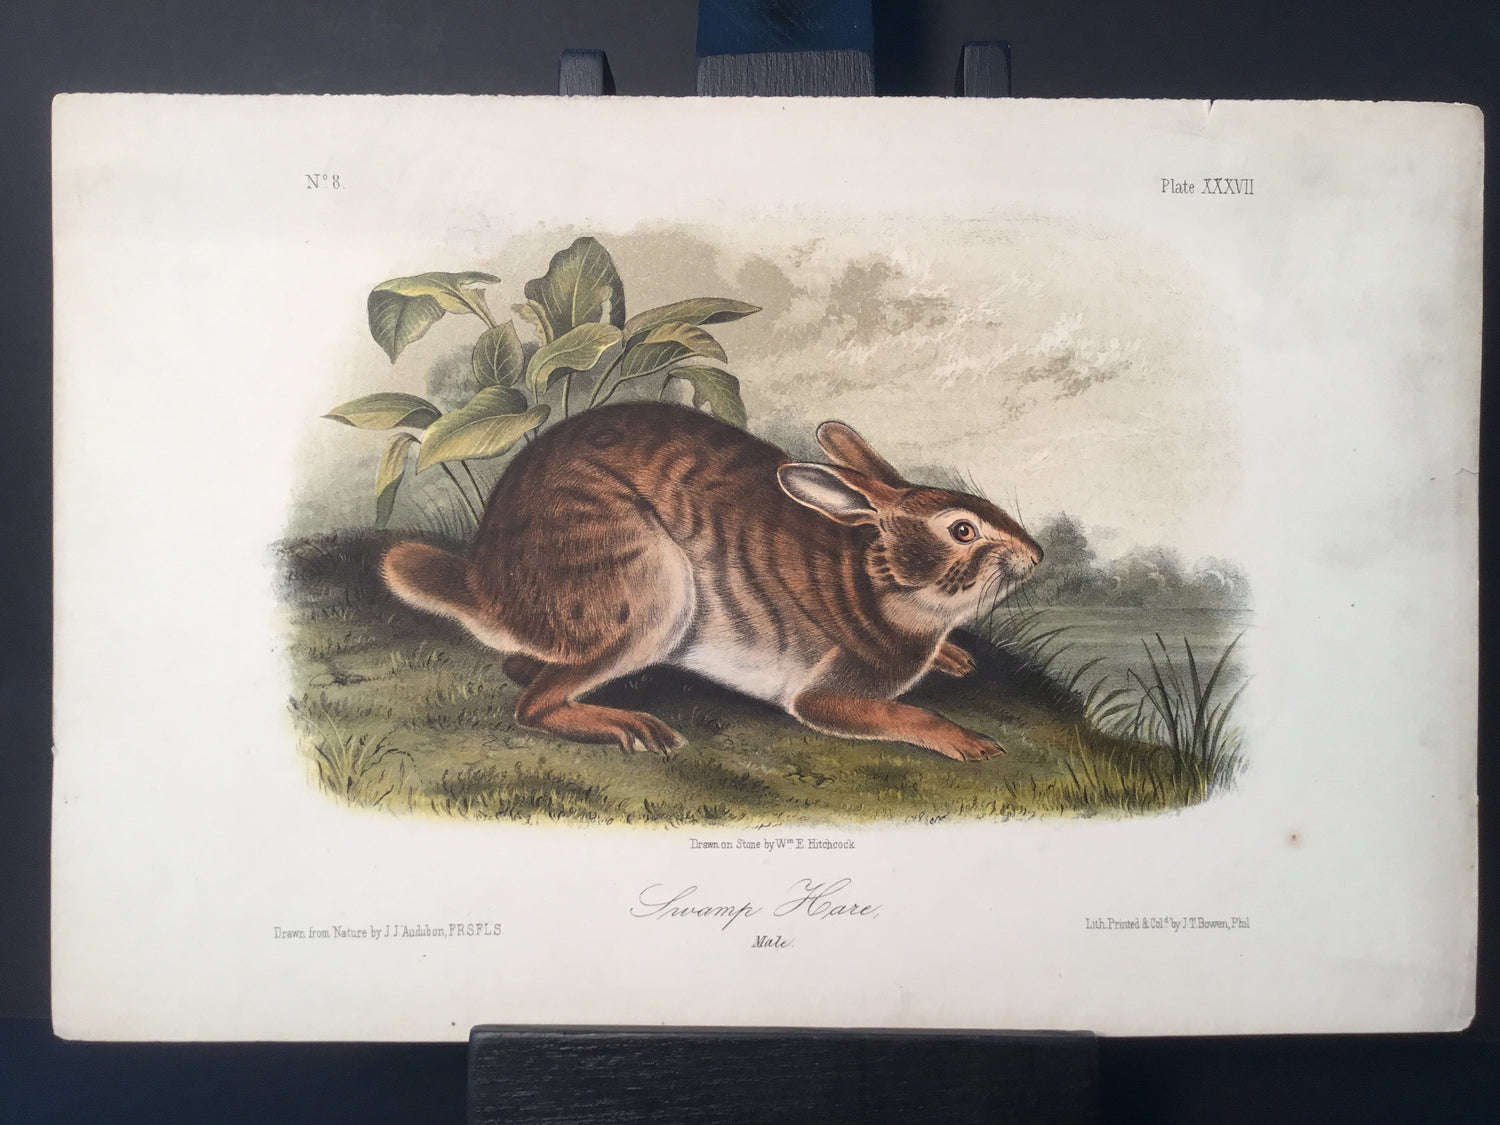 Lord-Hopkins Collection - Swamp Hare